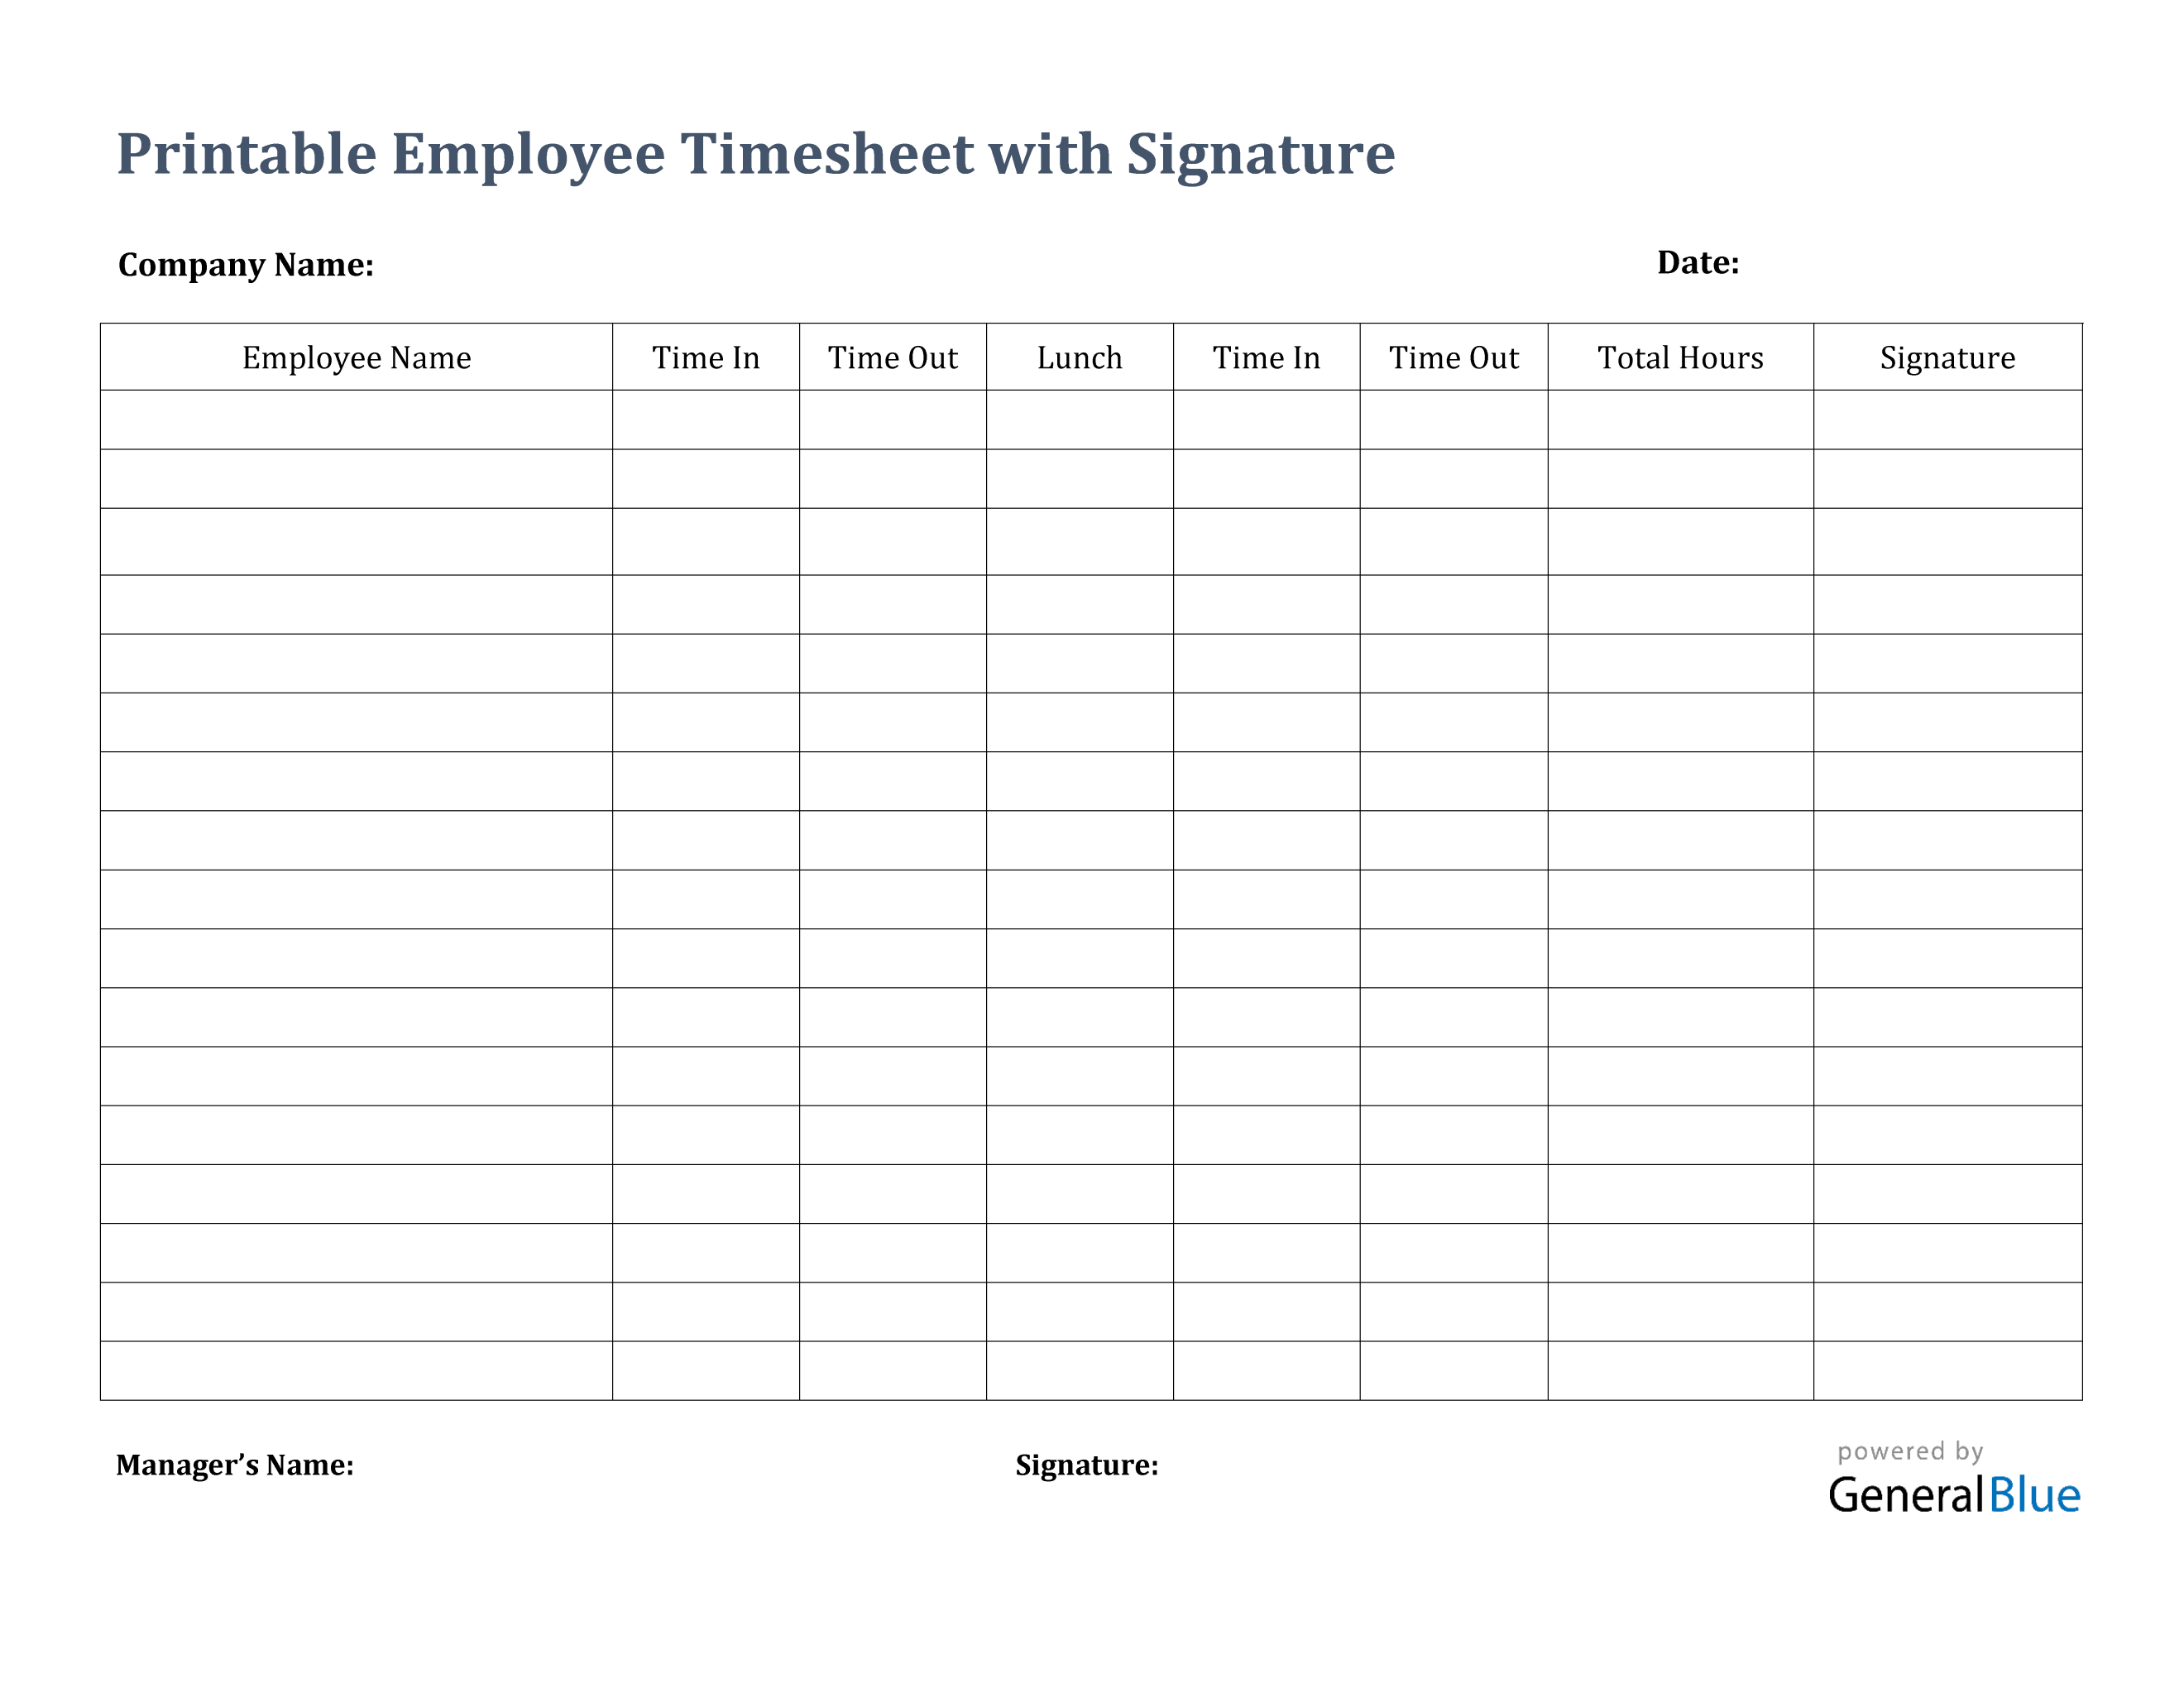 Printable Employee Timesheet With Signature In Pdf